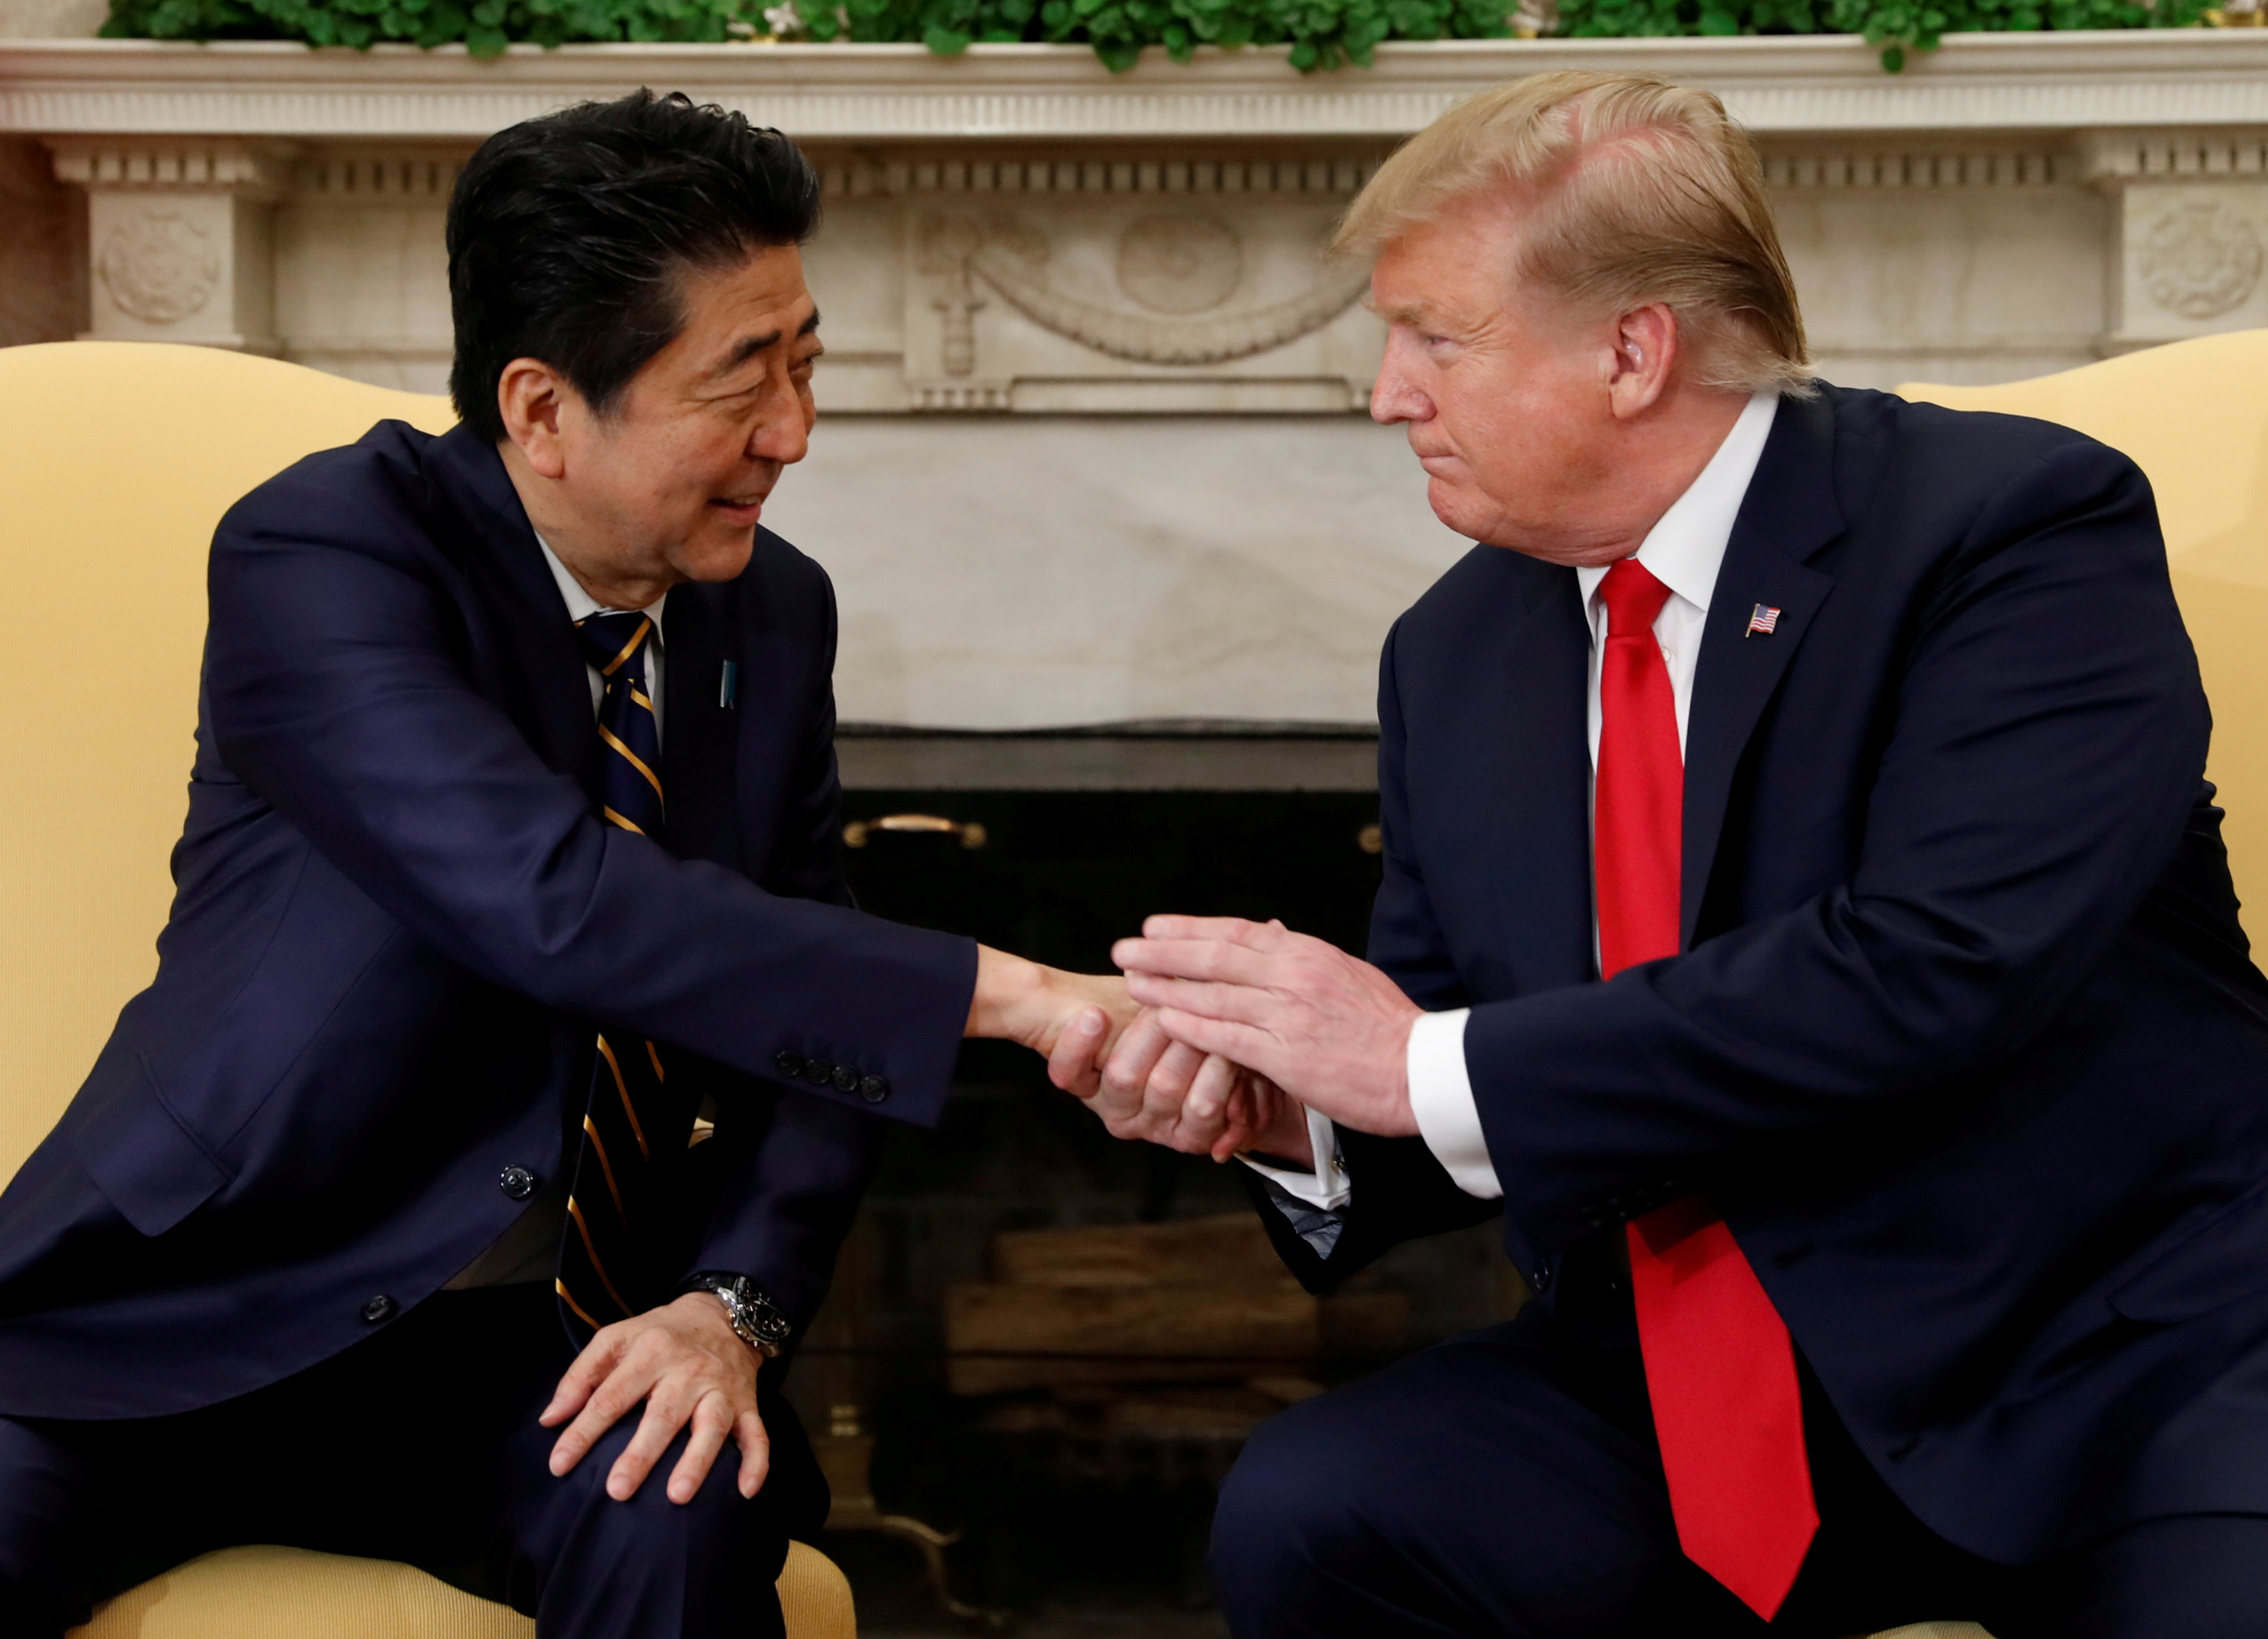 U.S. President Donald Trump meets with Japan's Prime Minister Shinzo Abe in the Oval Office at the White House in Washington, U.S., April 26, 2019. REUTERS/Kevin Lamarque